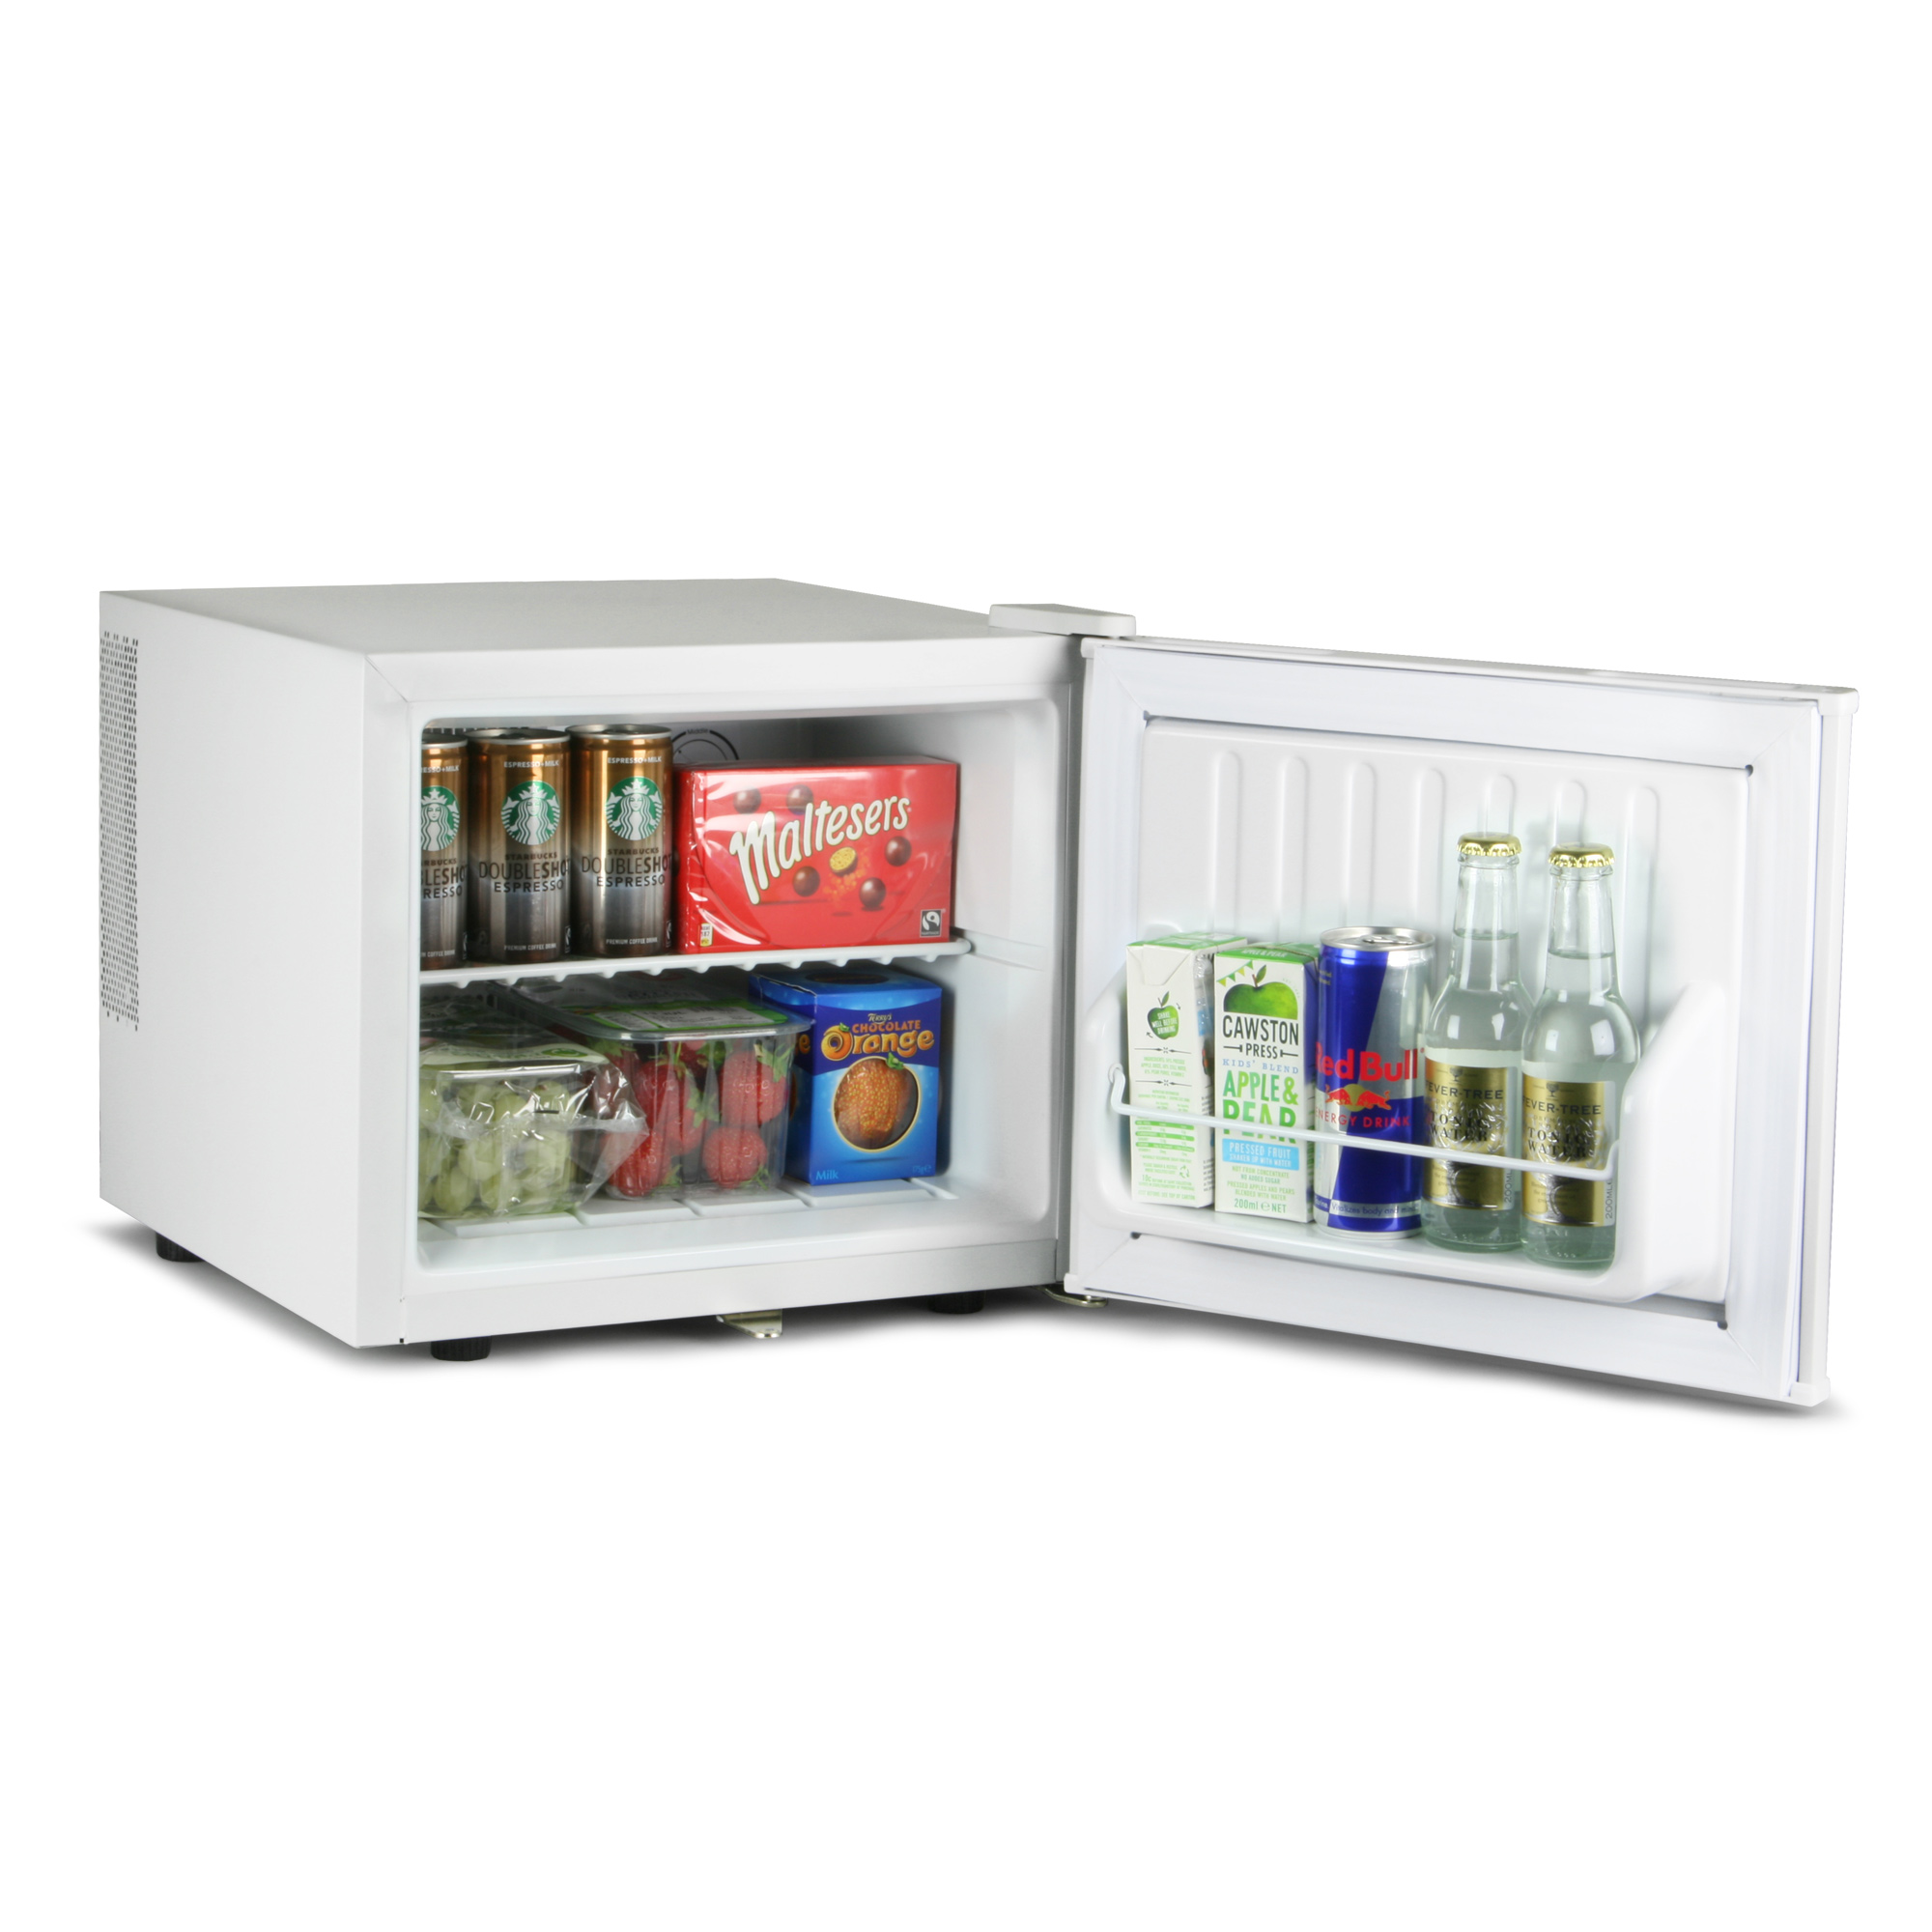 a guide to buying mini fridges drinkstuff blog this is the most commonly used mini fridge because of its size and design that allows you to fit a lot inside they typically have an interior storage space